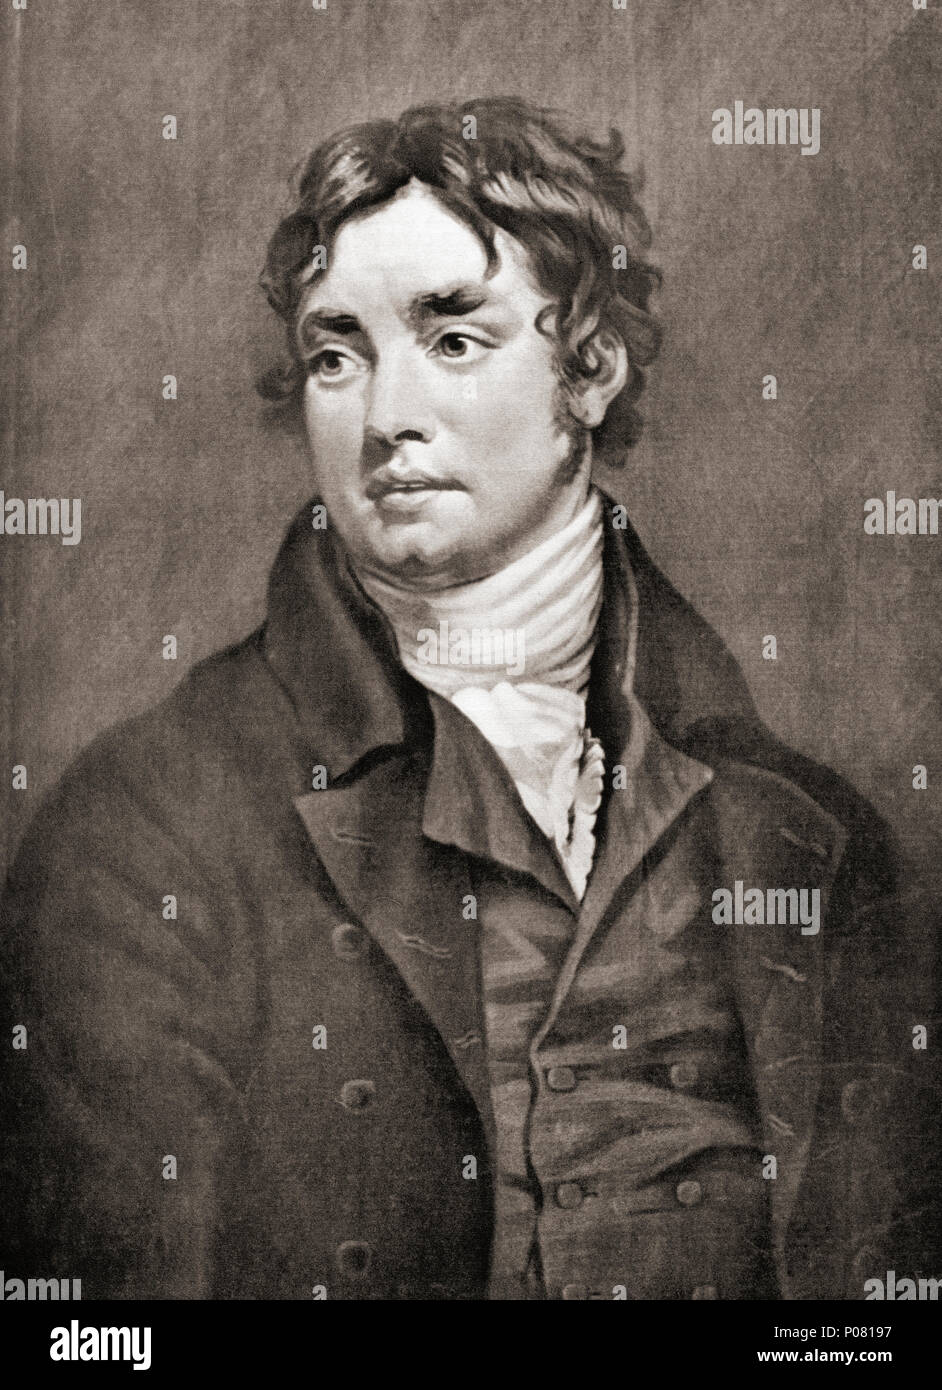 Samuel Taylor Coleridge, 1772 – 1834.  English poet, literary critic, philosopher and theologian.  After a contemporary print. - Stock Image